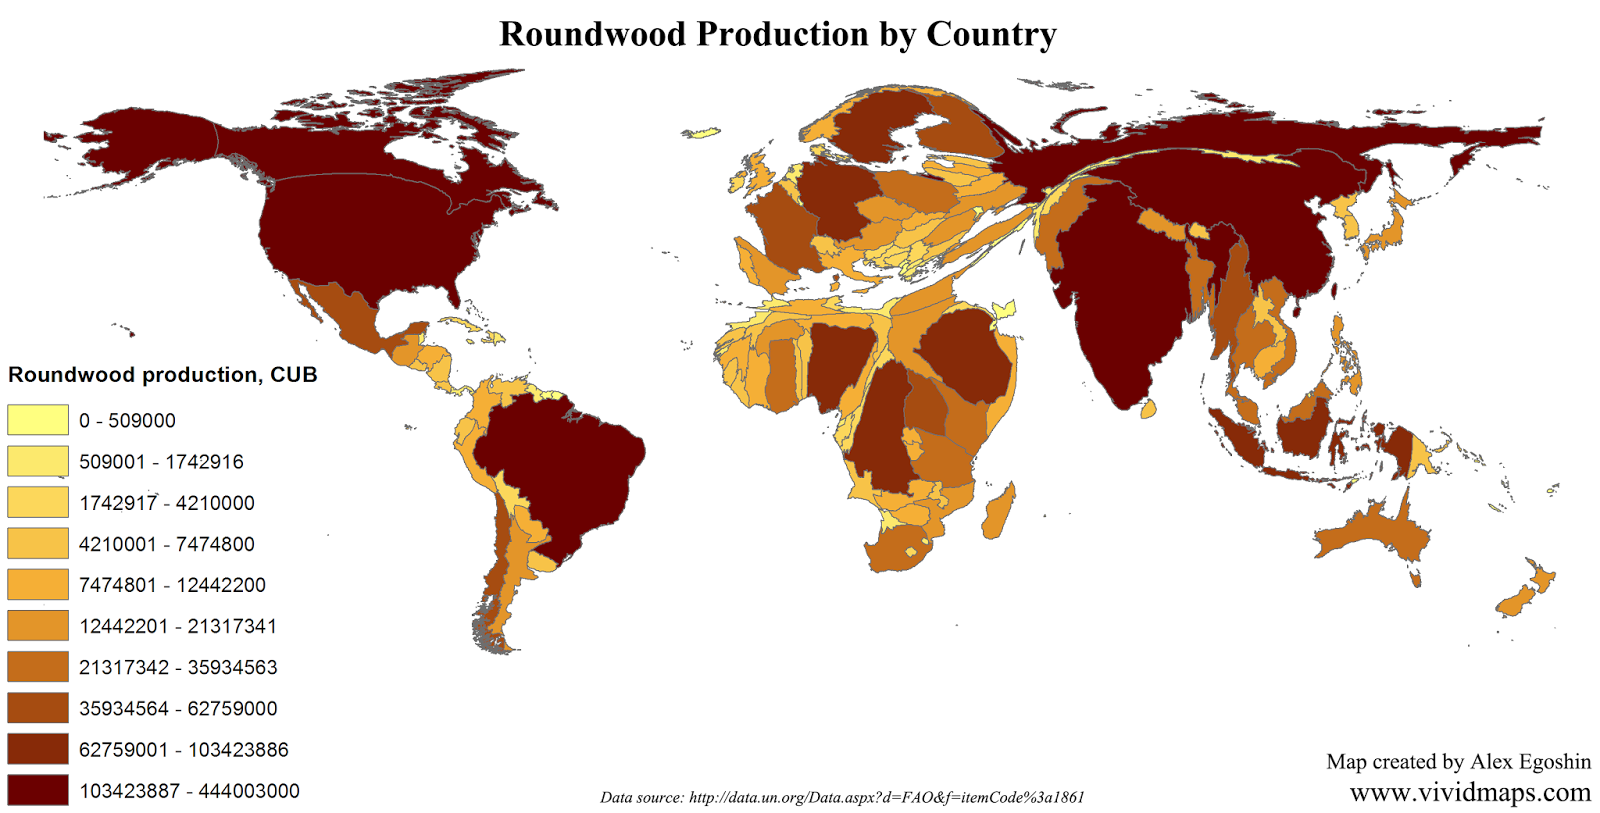 Roundwood production by country